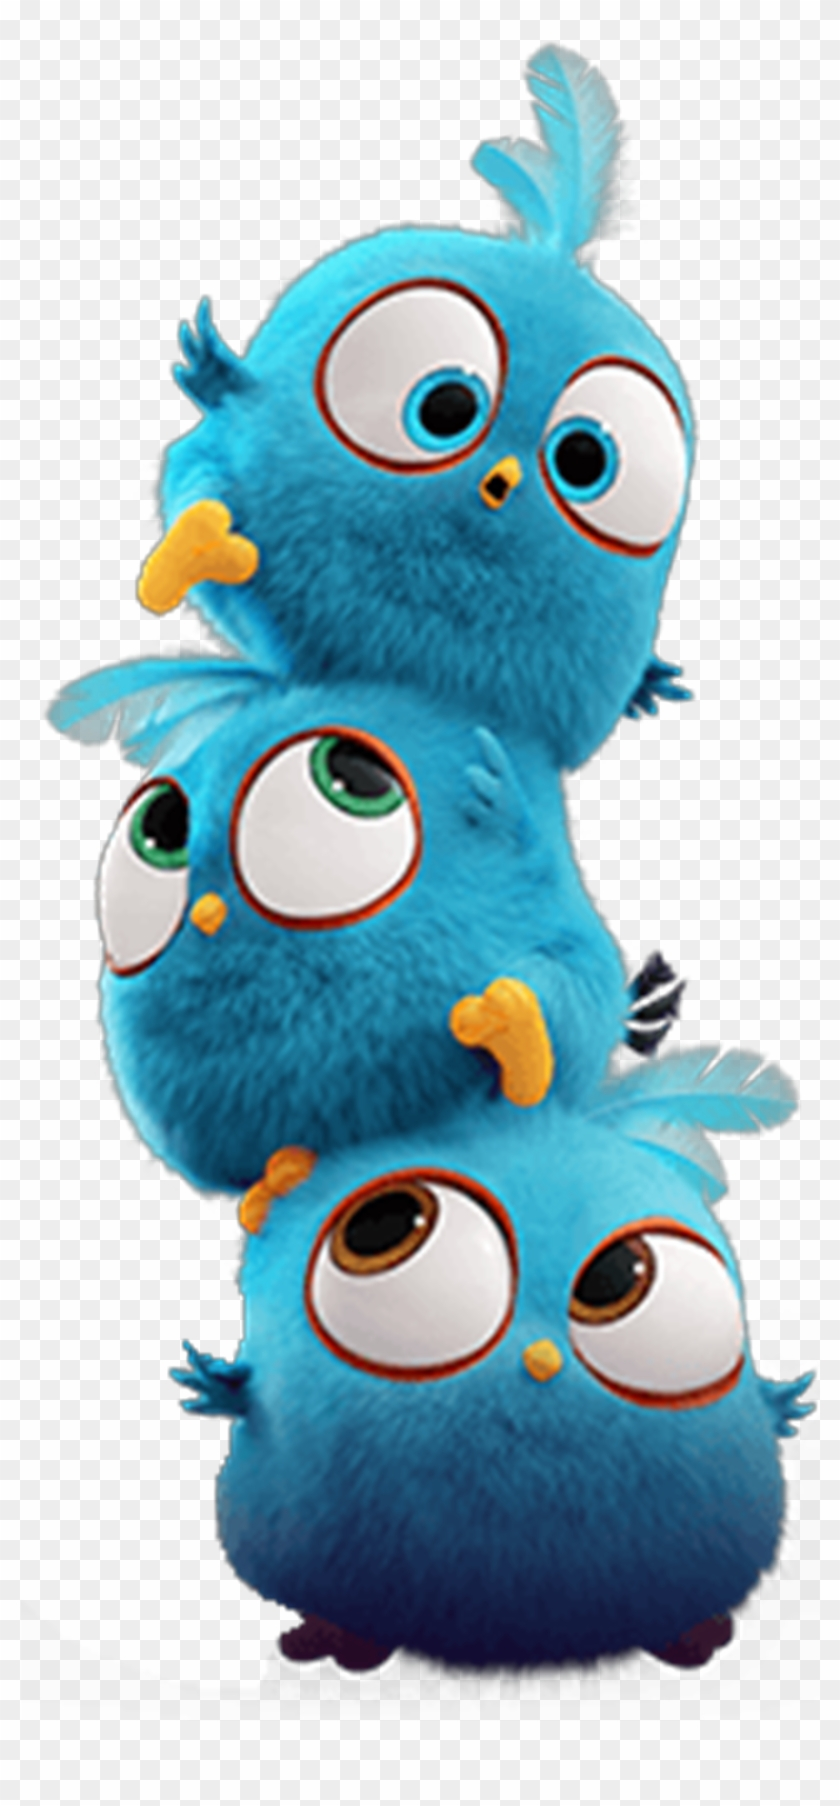 Cute Bird Cartoon Delivering Letter Ilration 33992741 Angry Birds